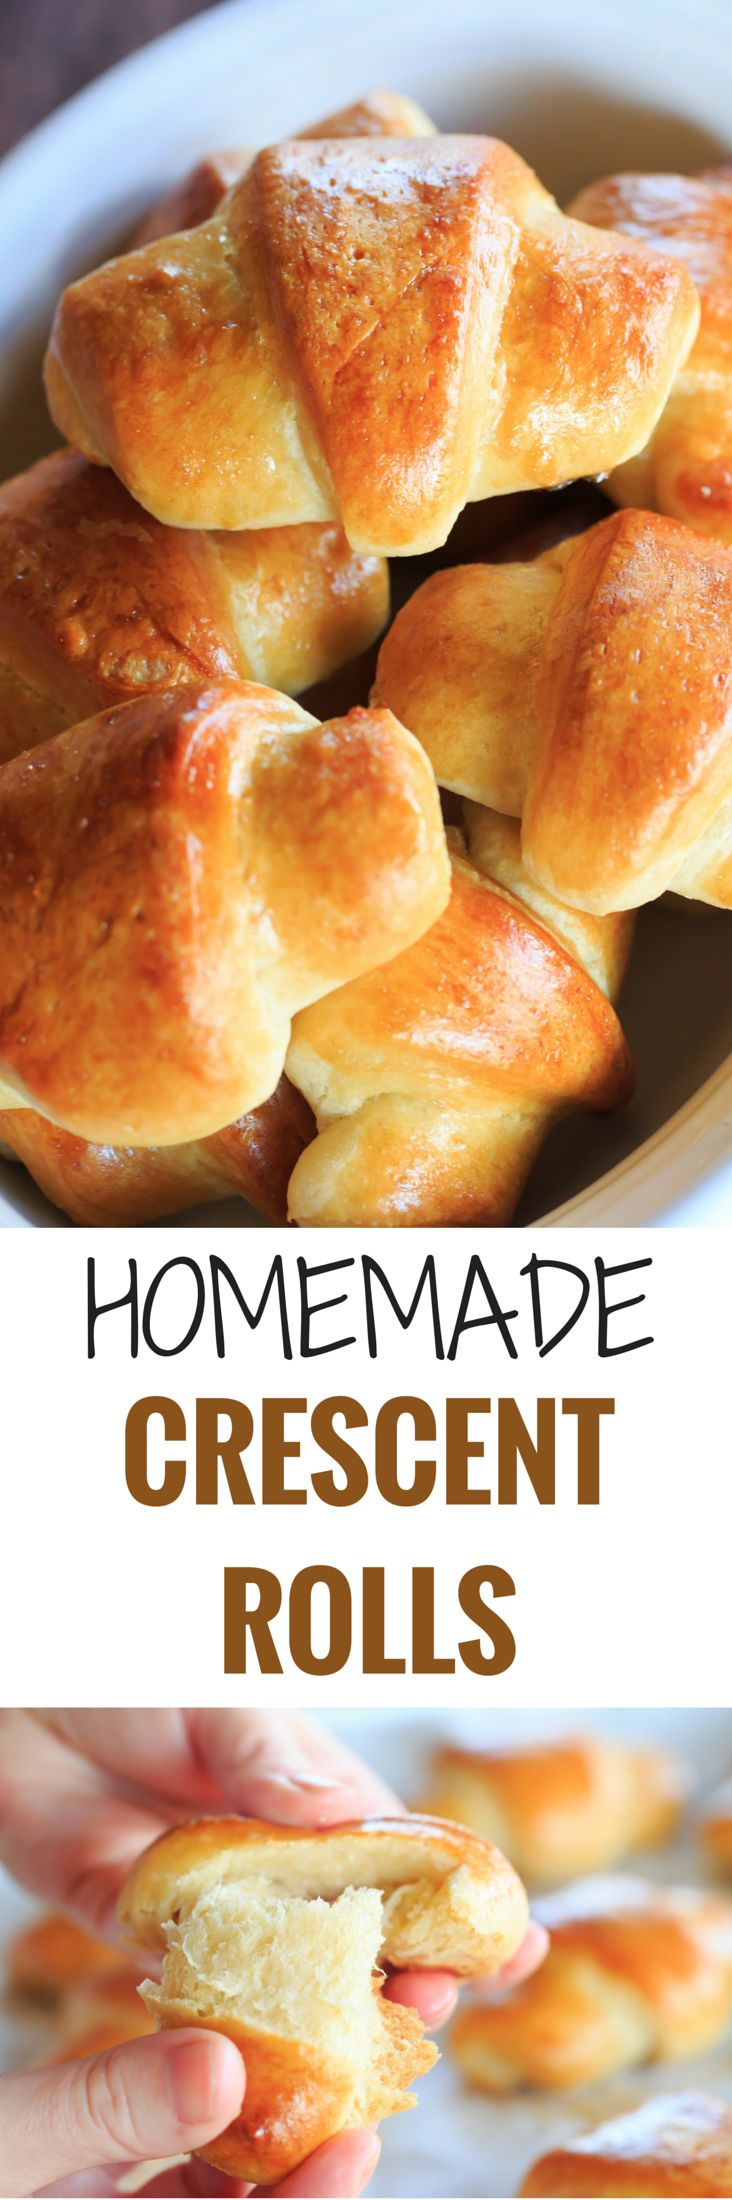 These homemade crescent rolls are flaky, buttery and easier than you'd think. They are the perfect accompaniment to any holiday meal! | http://www.browneyedbaker.com/homemade-crescent-rolls/